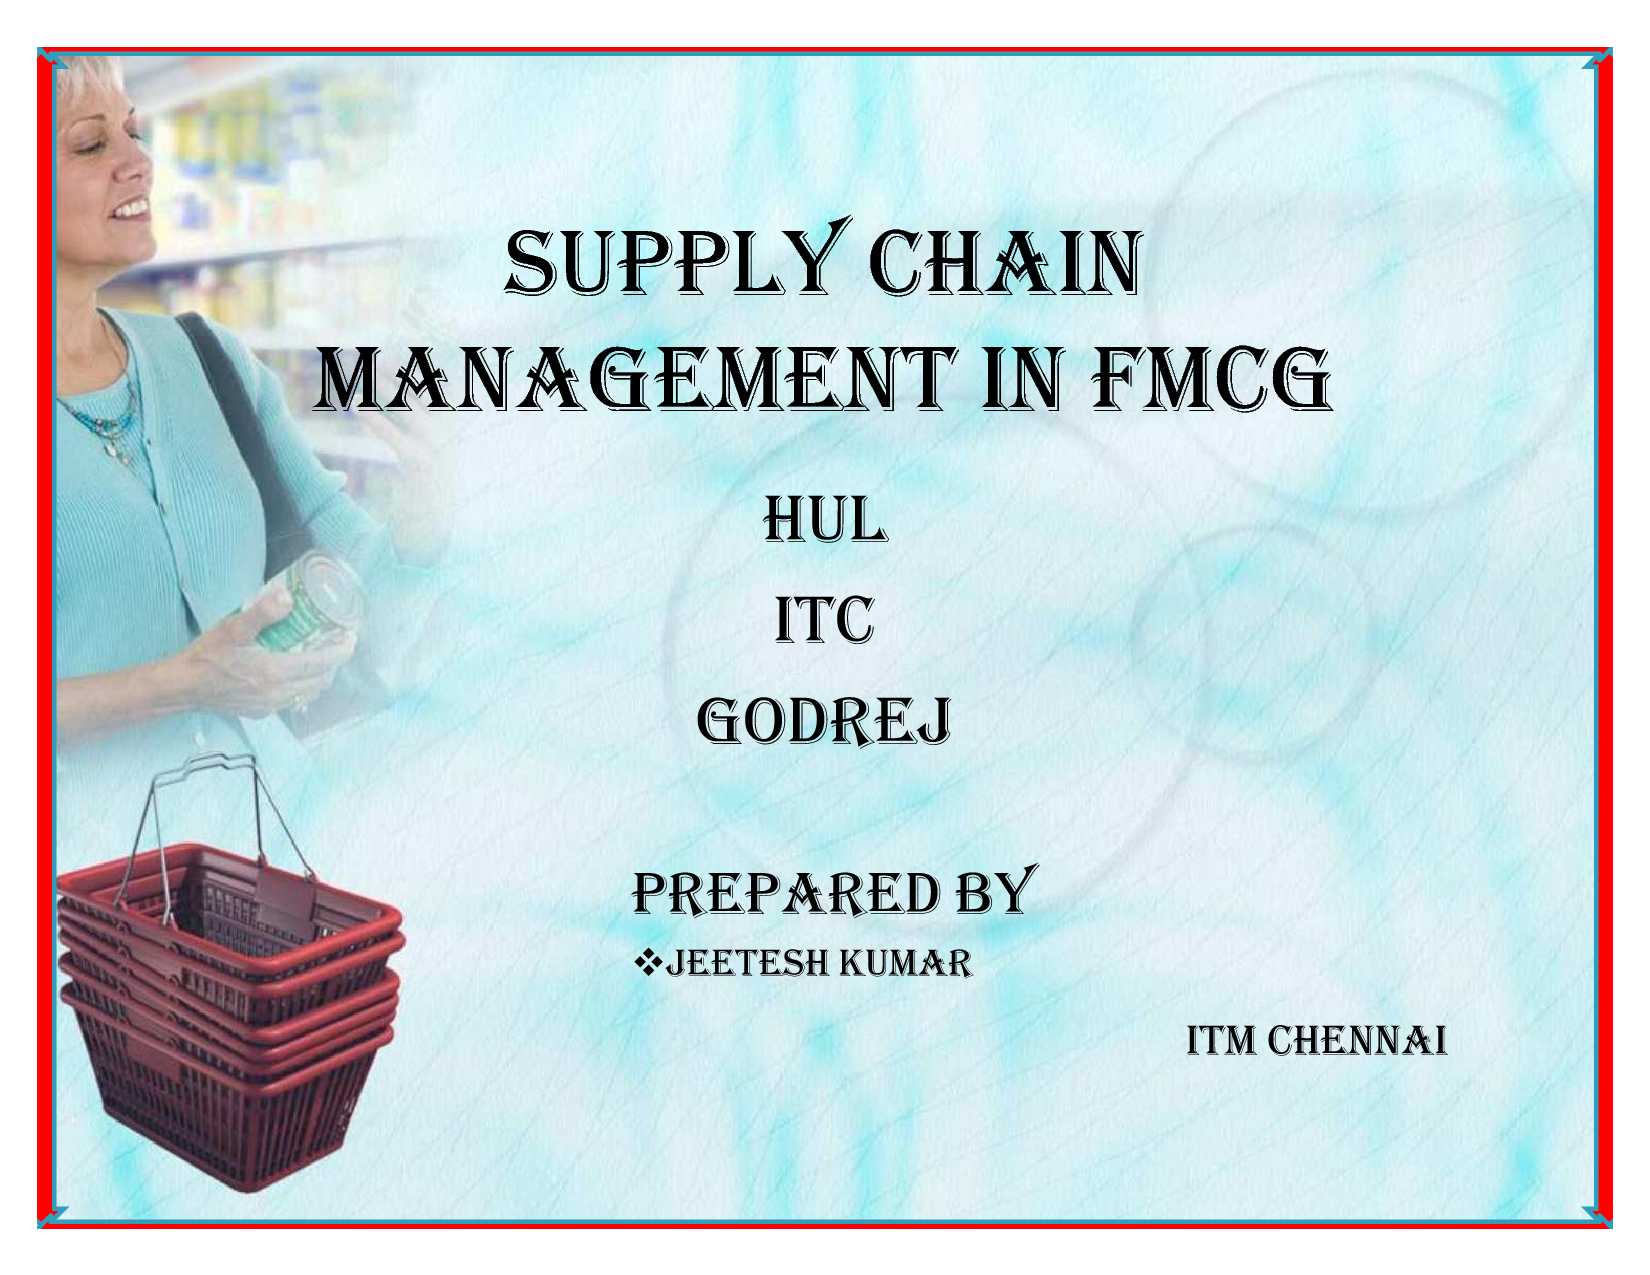 hul supply chain Supply chain management: a study of hindustan unilever limited, 978-3-659-46757-8, 9783659467578, 365946757x, business management, the focus of the book is to understand the hul supply chain in north east india.